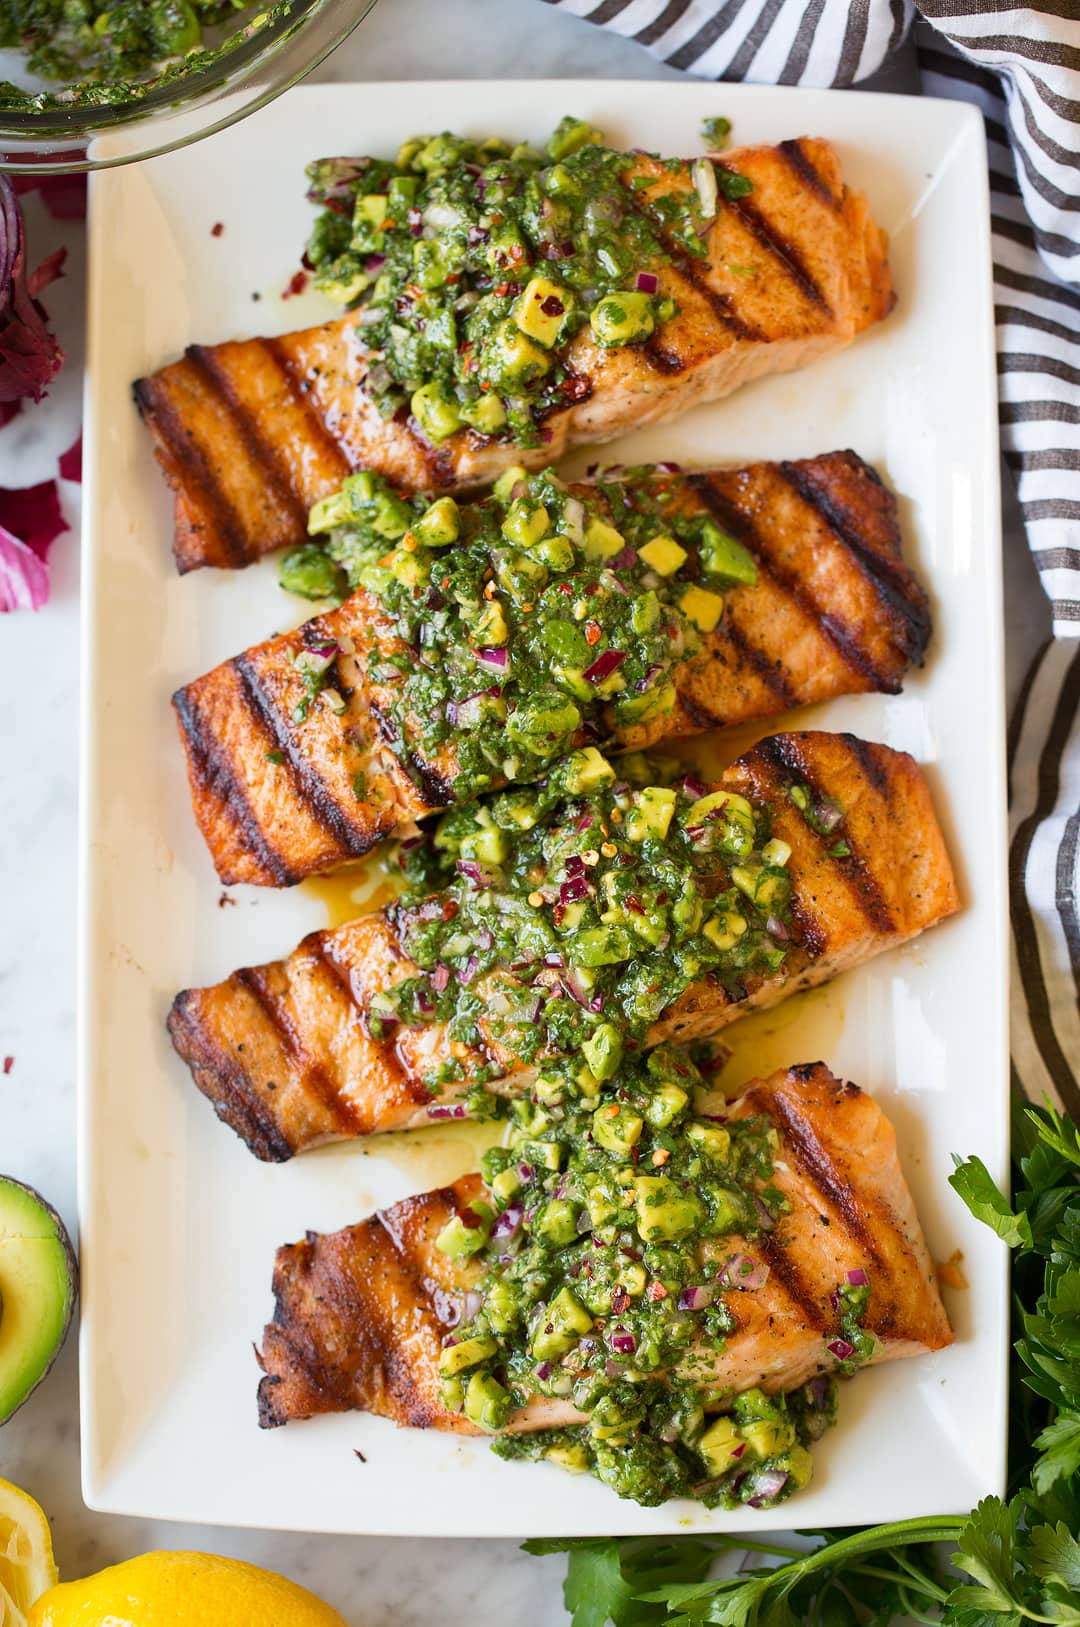 Four grilled salmon fillets on a plate topped with avocado chimichurri.